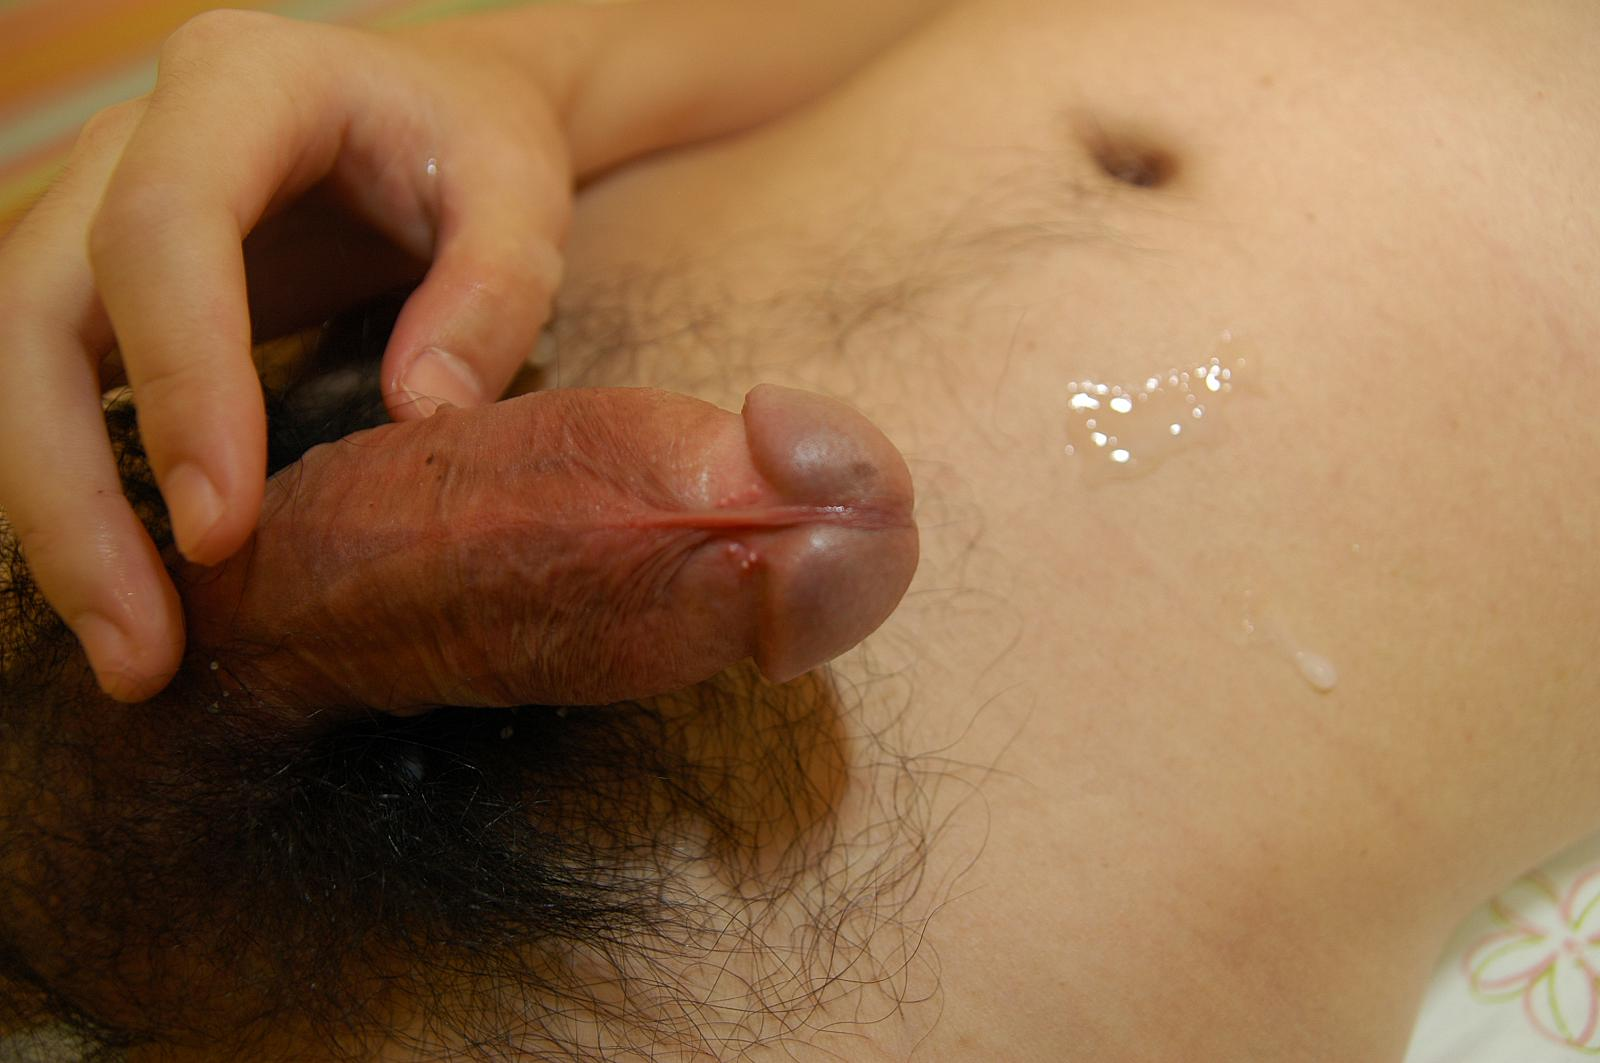 Japan-Studs-Shintaro-Ikeda-jerk-off-cum-Asian-big-cock-13 Japanese Street Boy Jerks Hairy Uncut Asian Cock and Cums For Cash